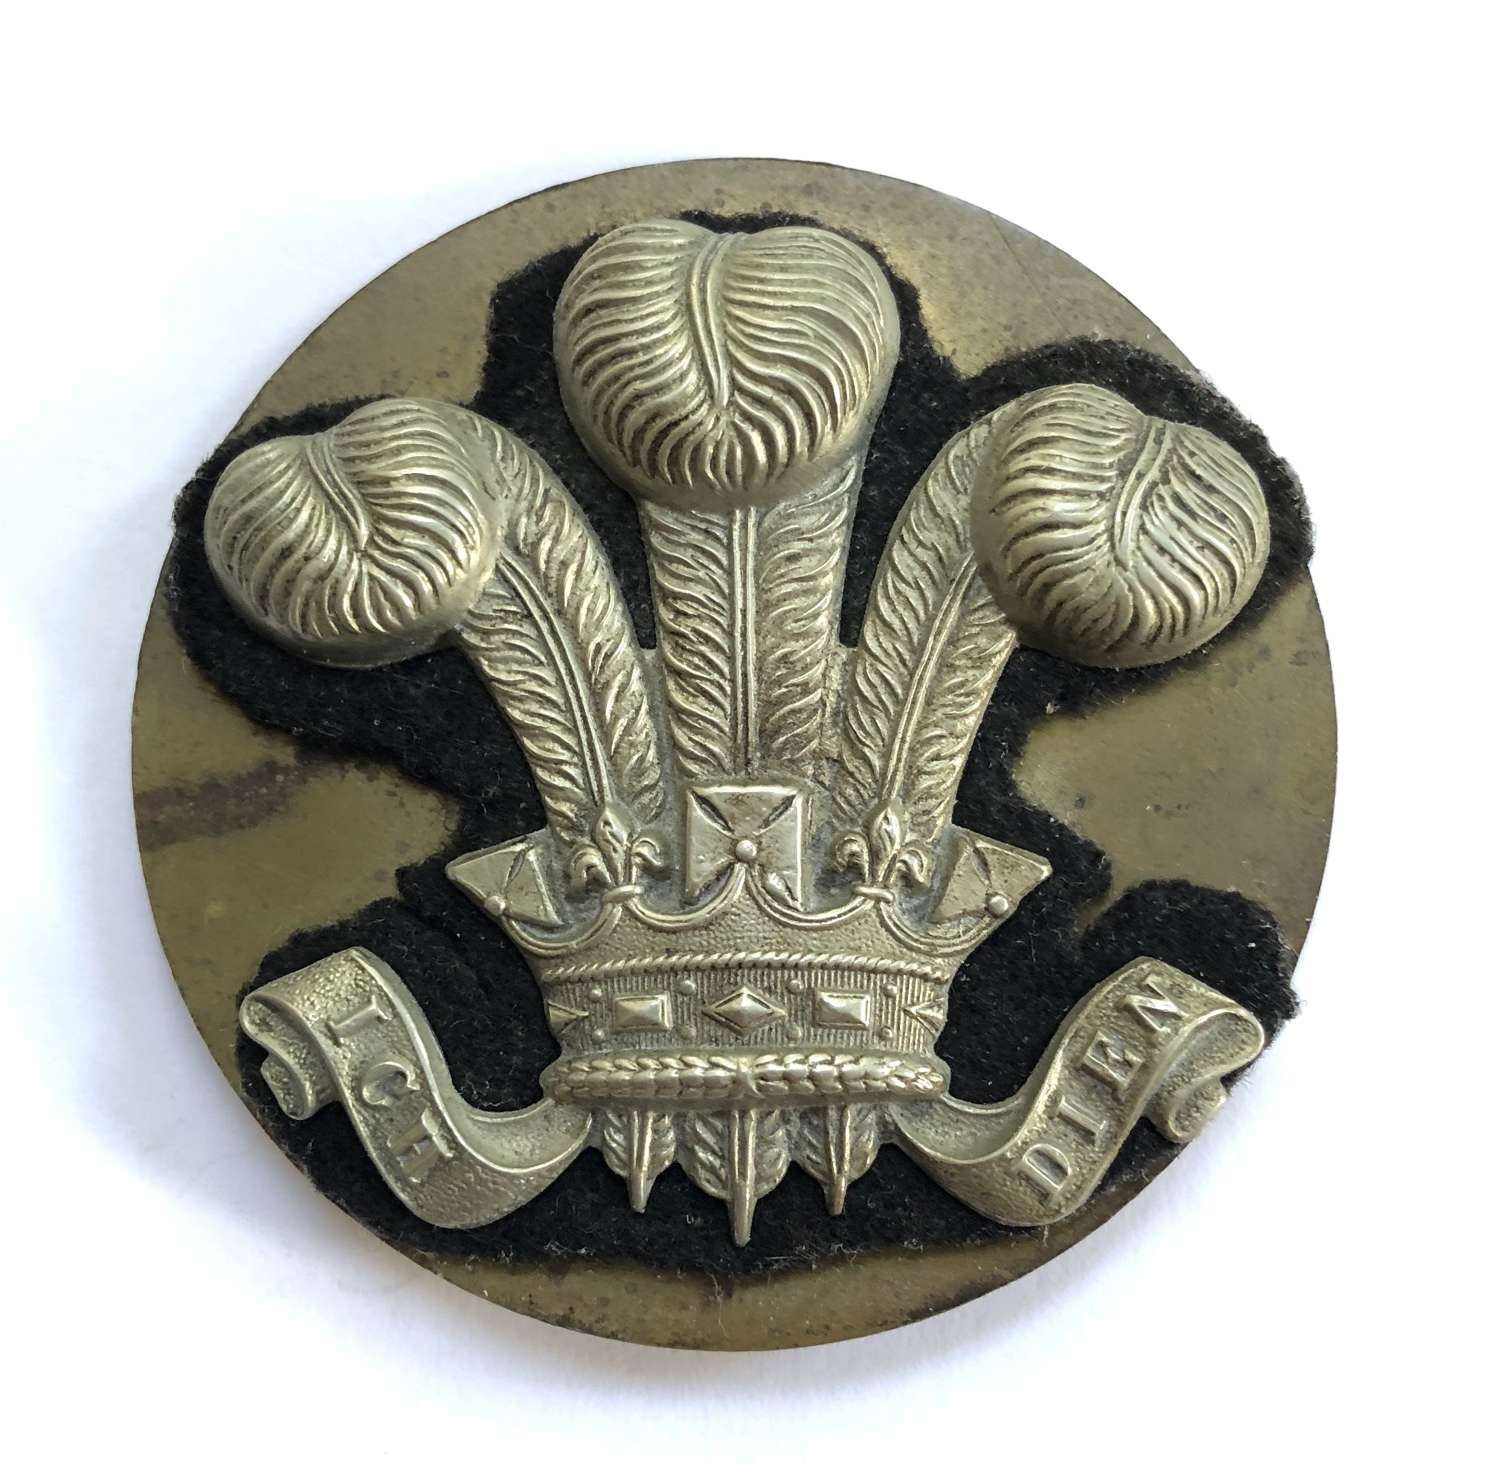 12th Royal Lancers NCO's arm badge